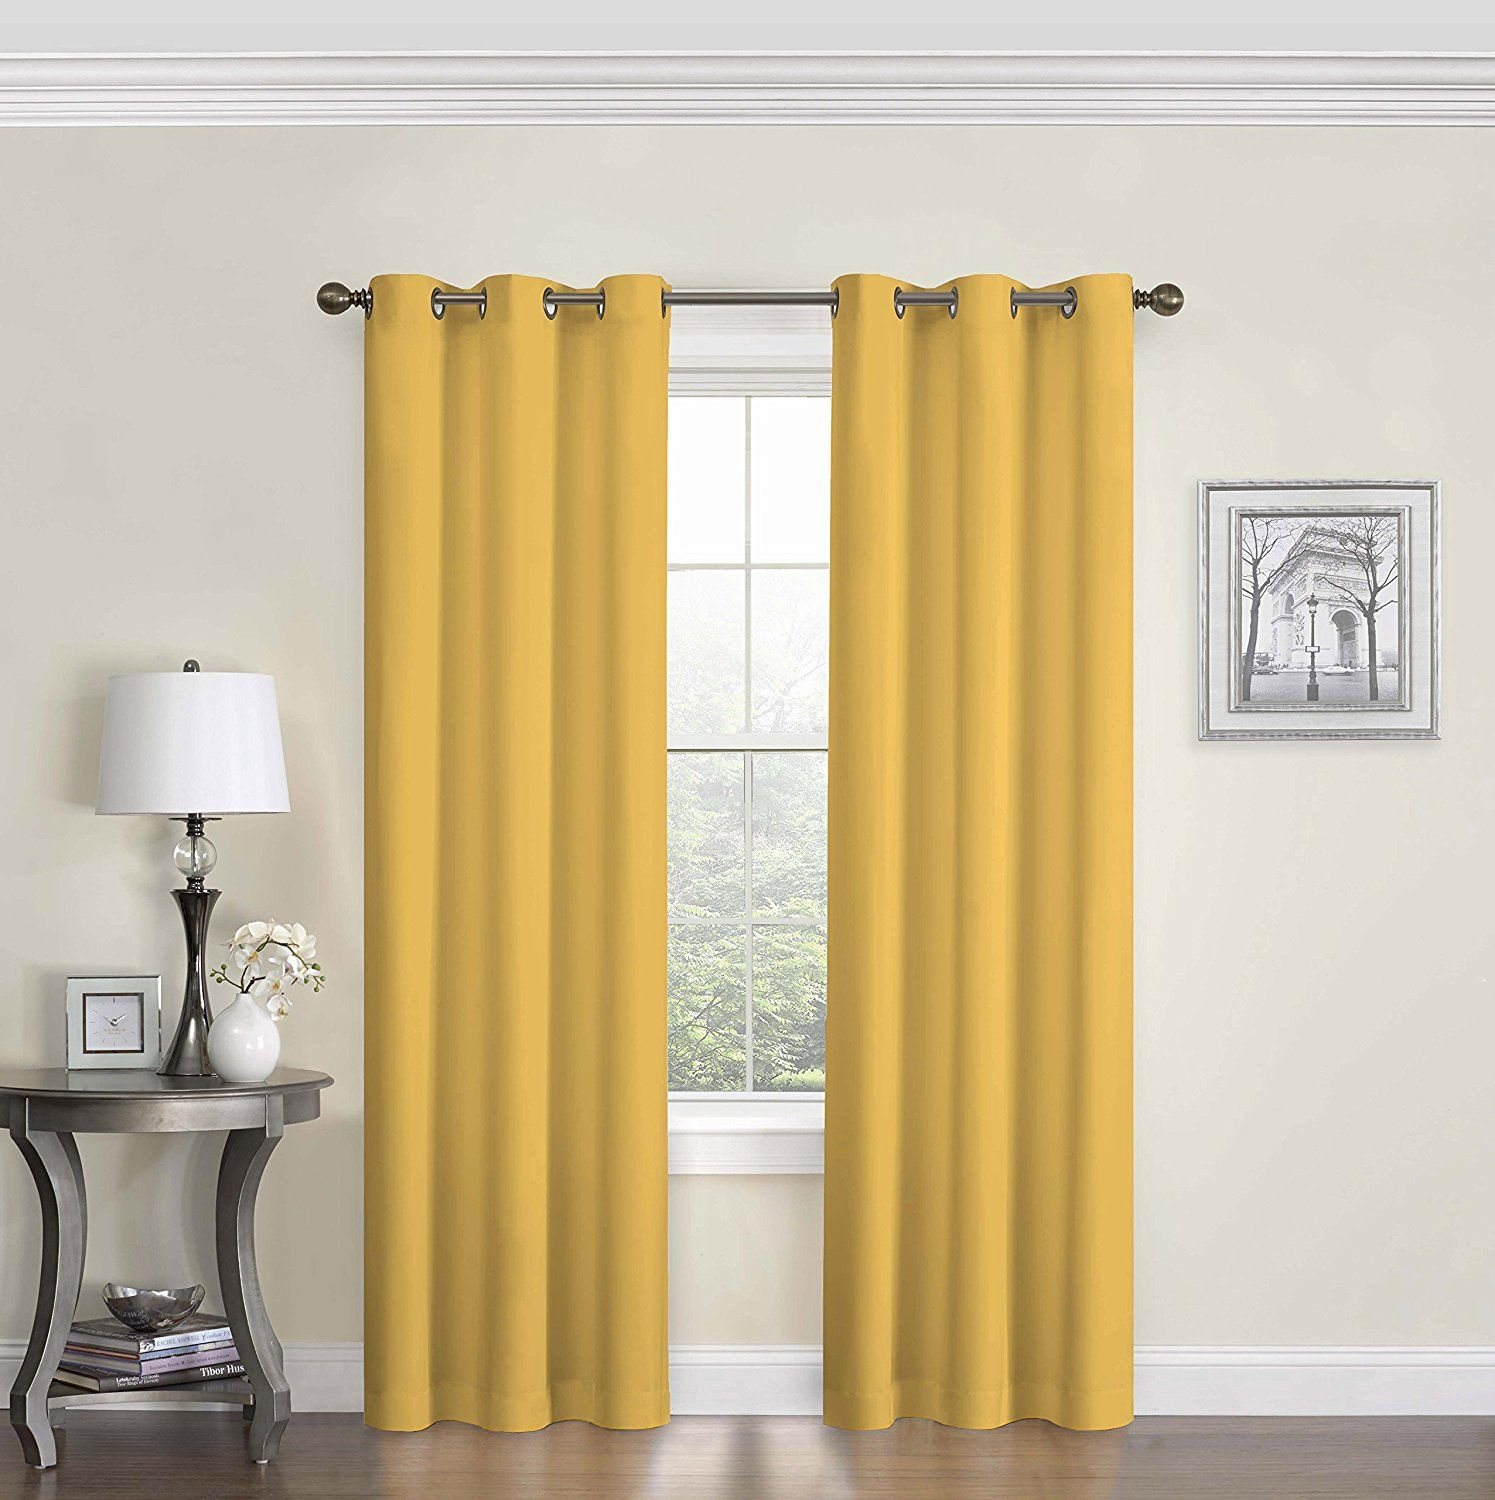 rod trends pocket and of kids eclipse dot sxs pic astonishing concept polka curtains sheers curtain single window panel uncategorized